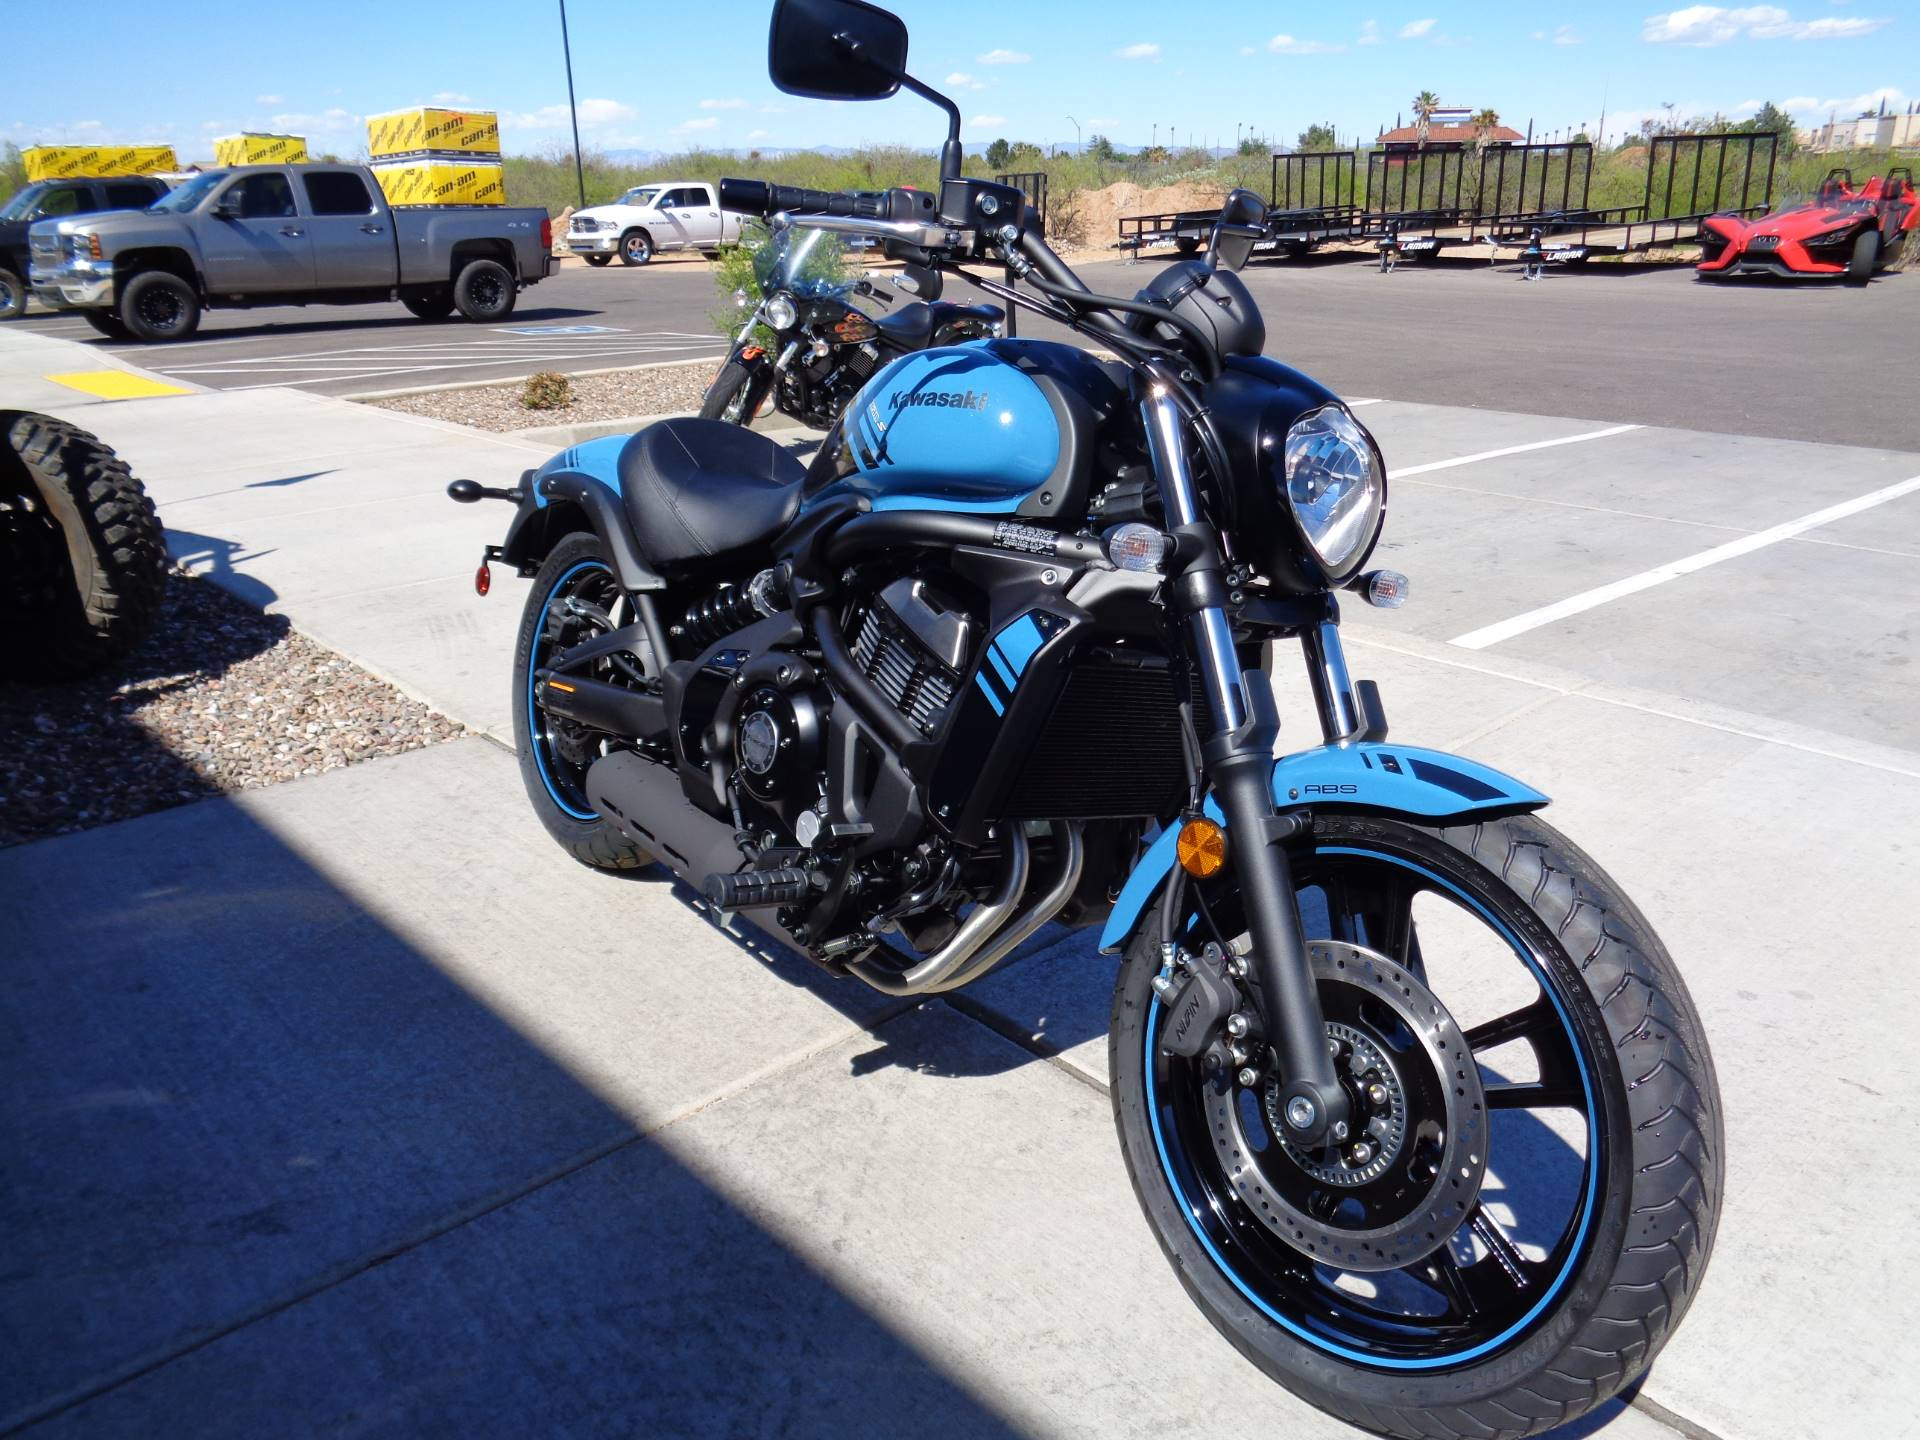 2019 Kawasaki Vulcan S ABS in Sierra Vista, Arizona - Photo 4